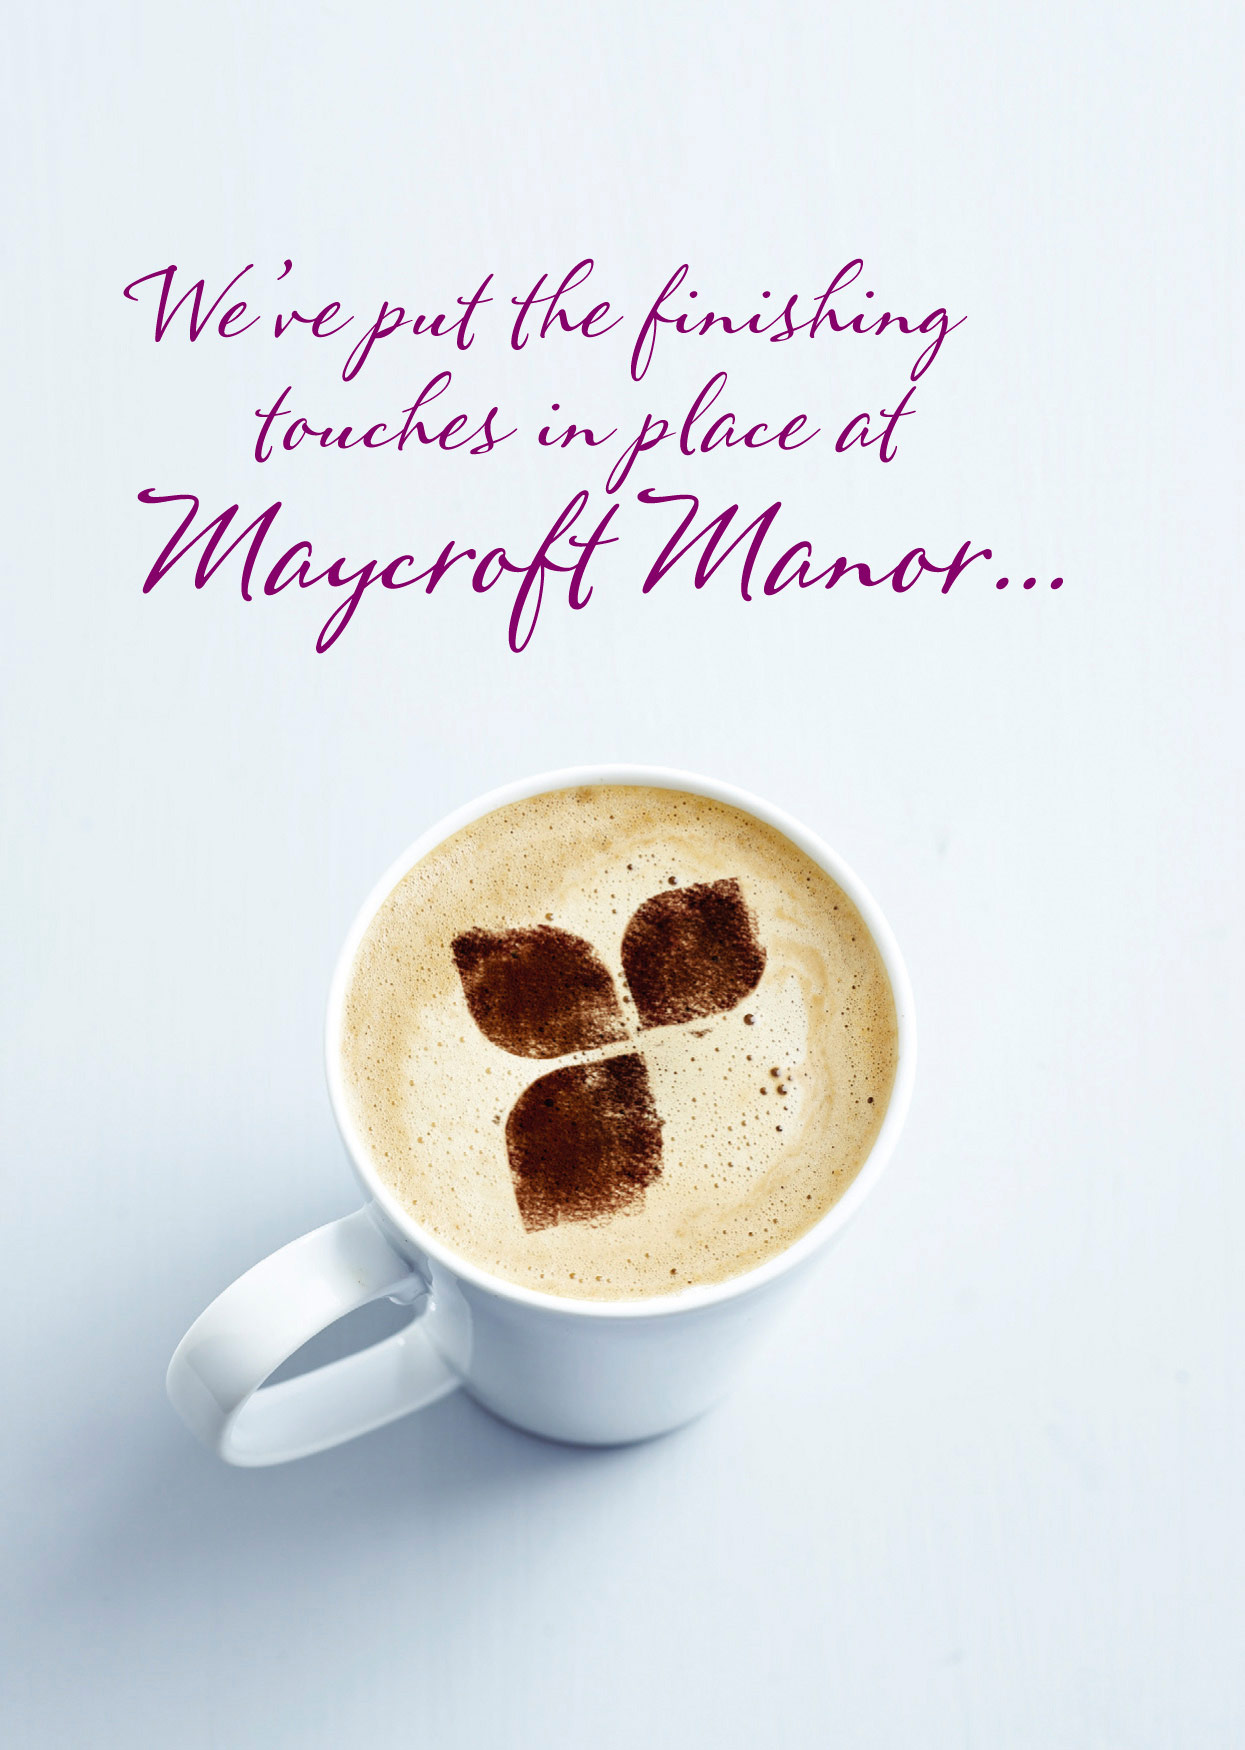 Coffee advert for Hallmark Care Homes